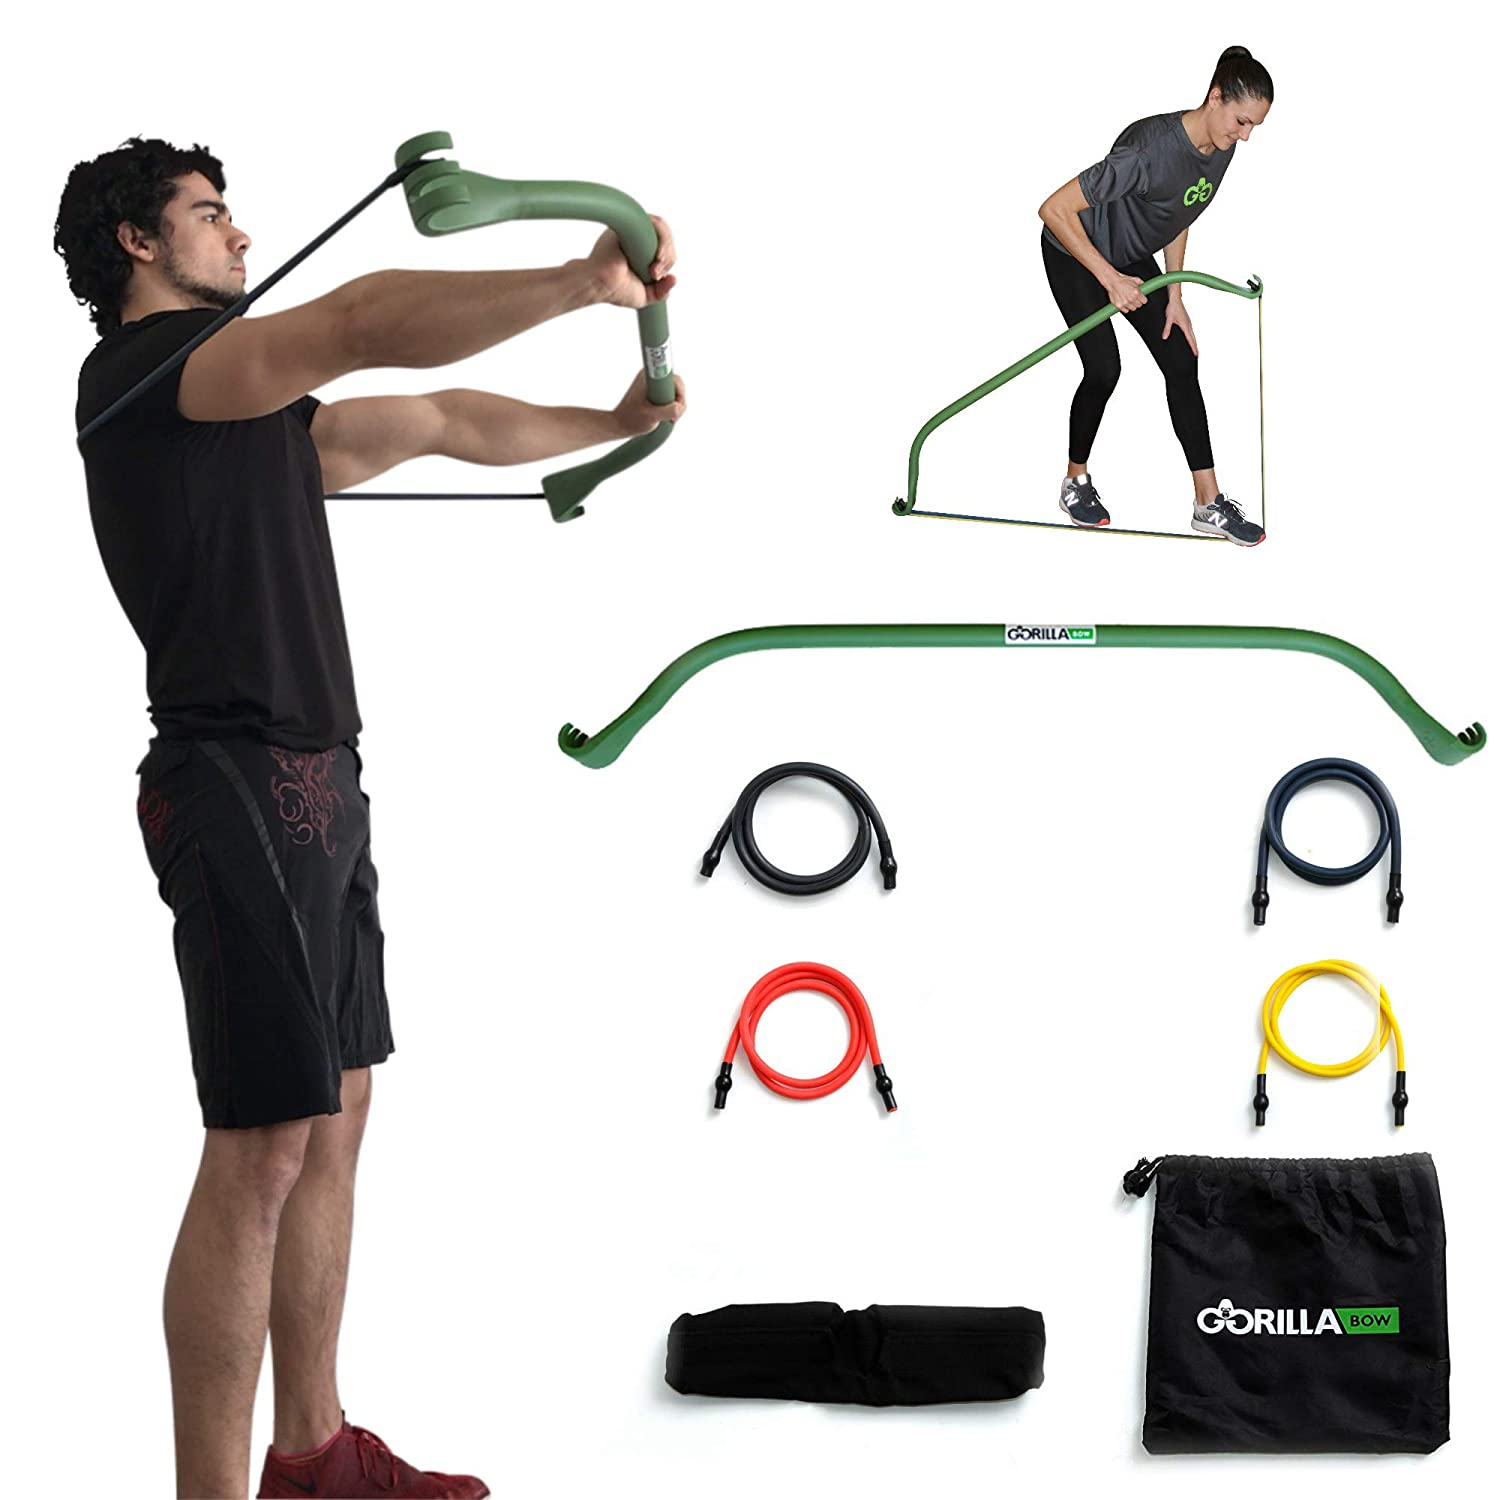 Gorilla Bow Full Portable Home Gym Resistance Band System